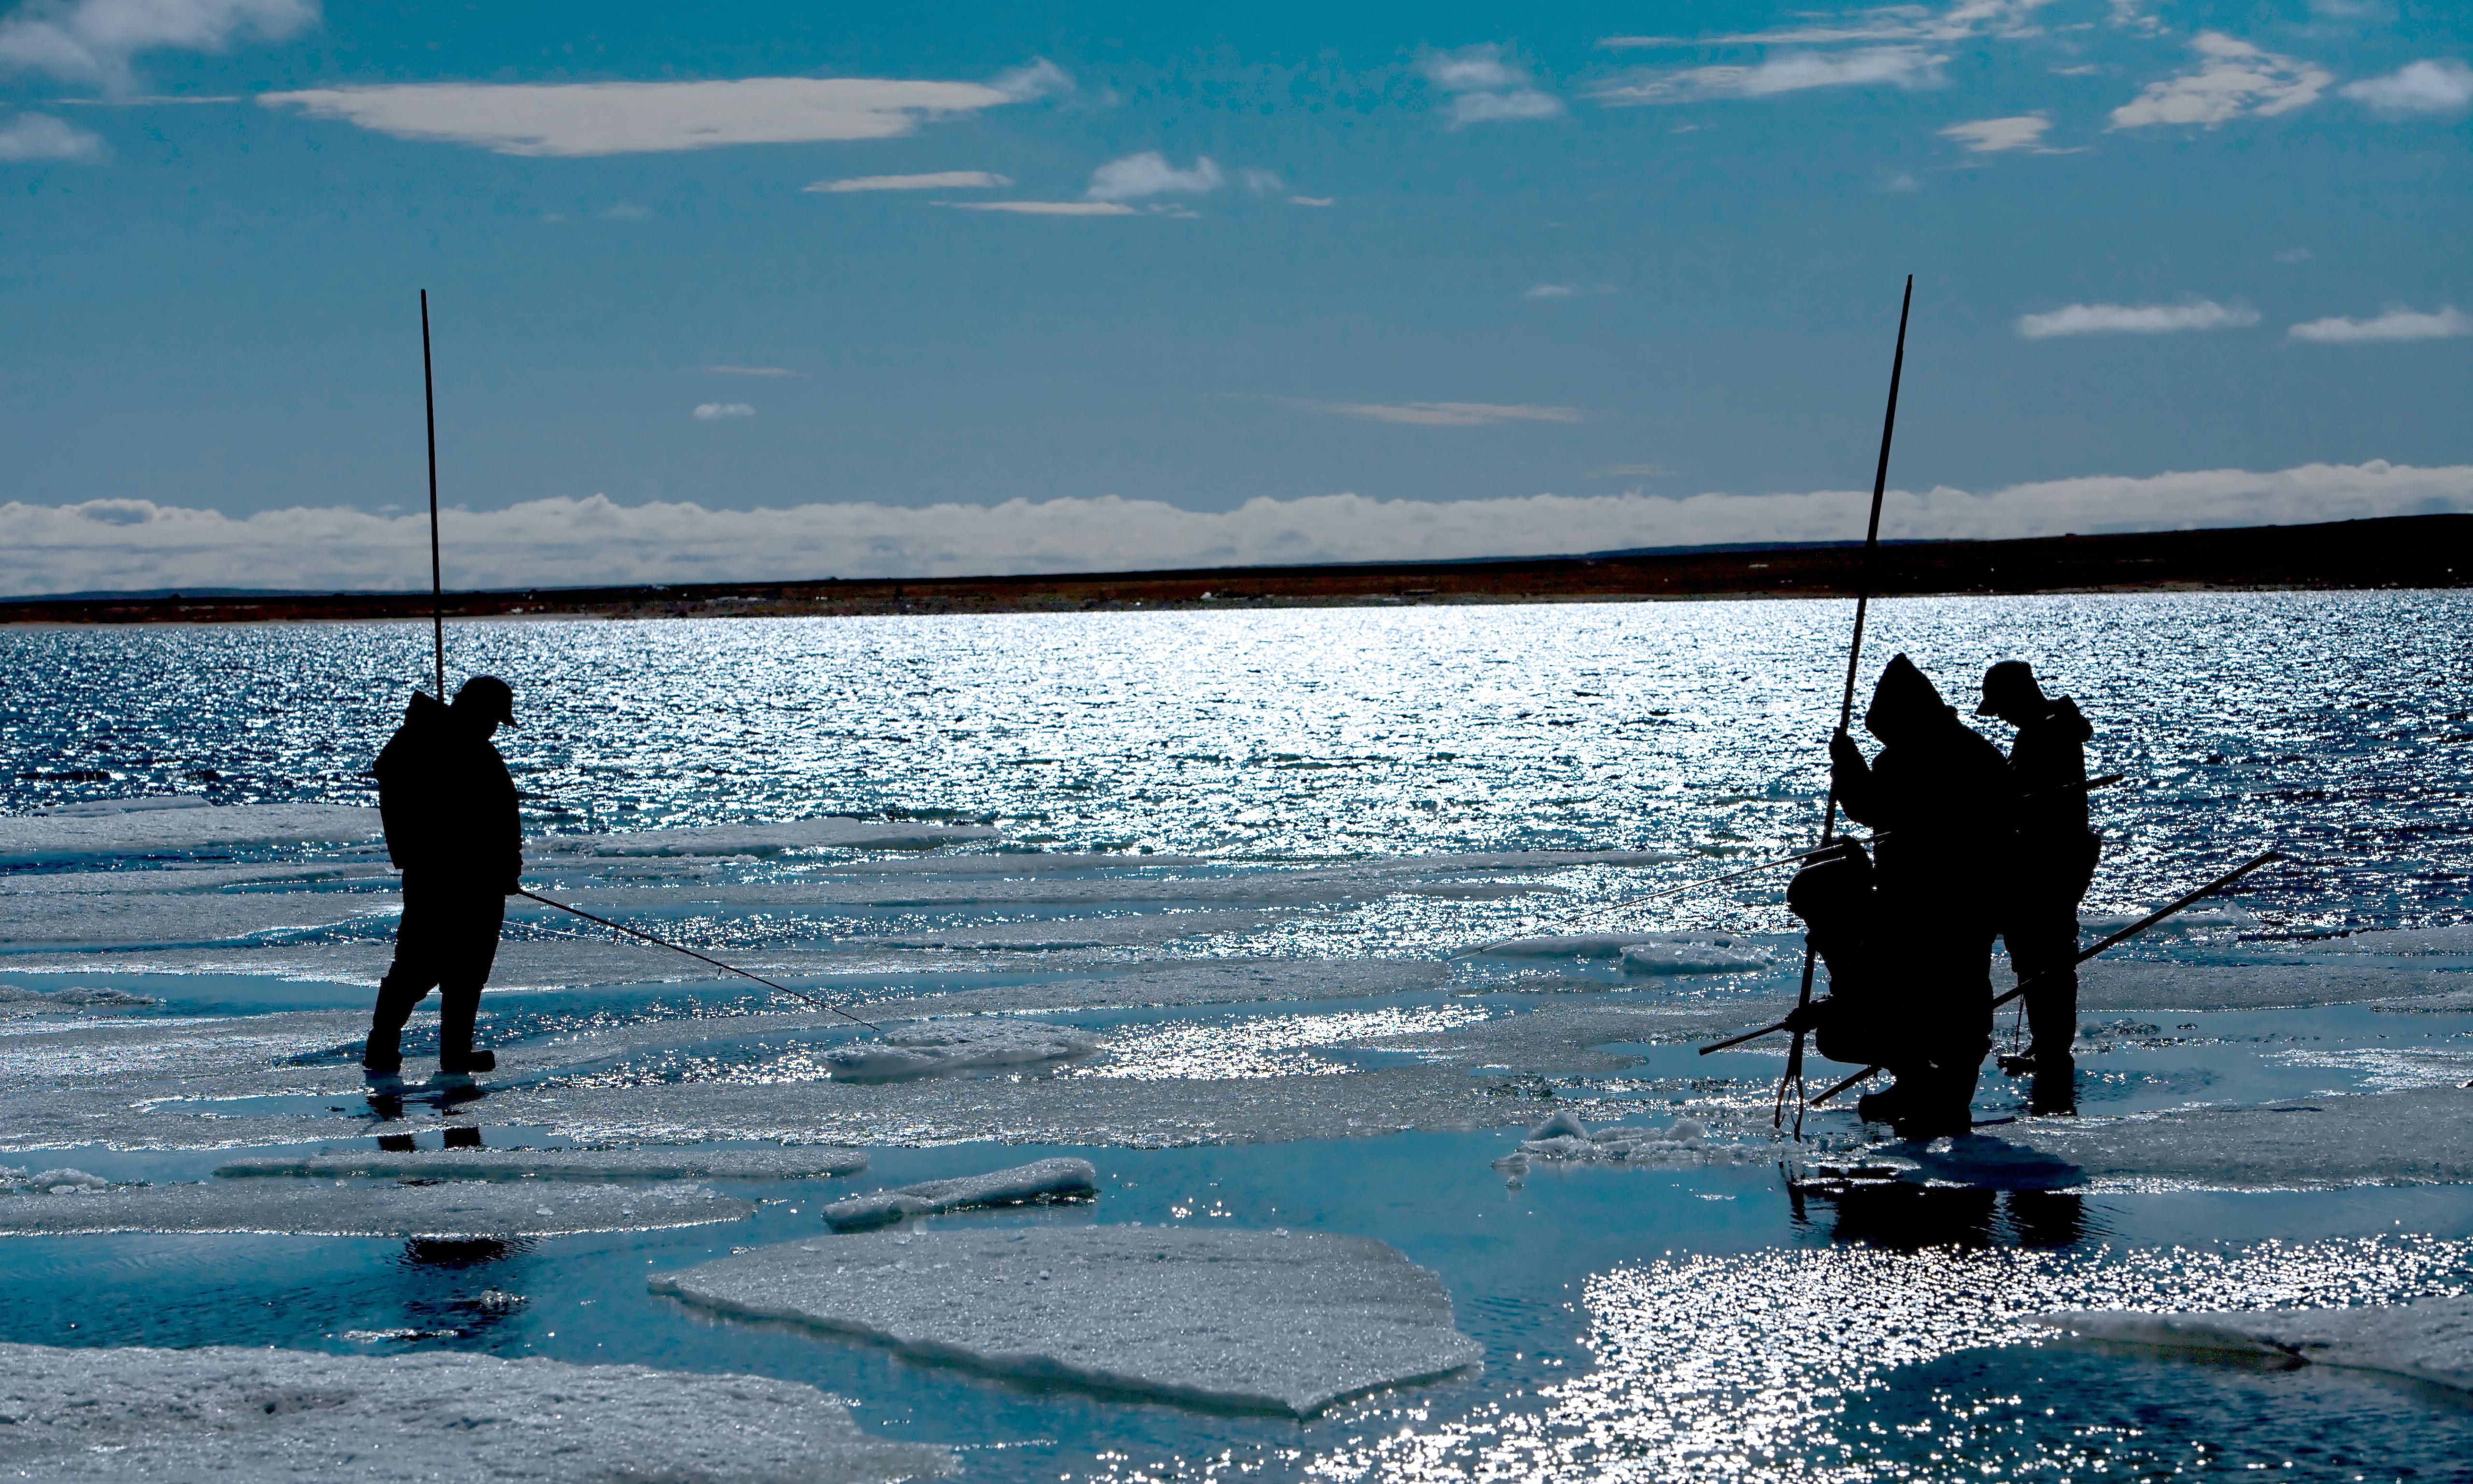 App helps Inuit hunters navigate thinning sea ice in Canadian Arctic